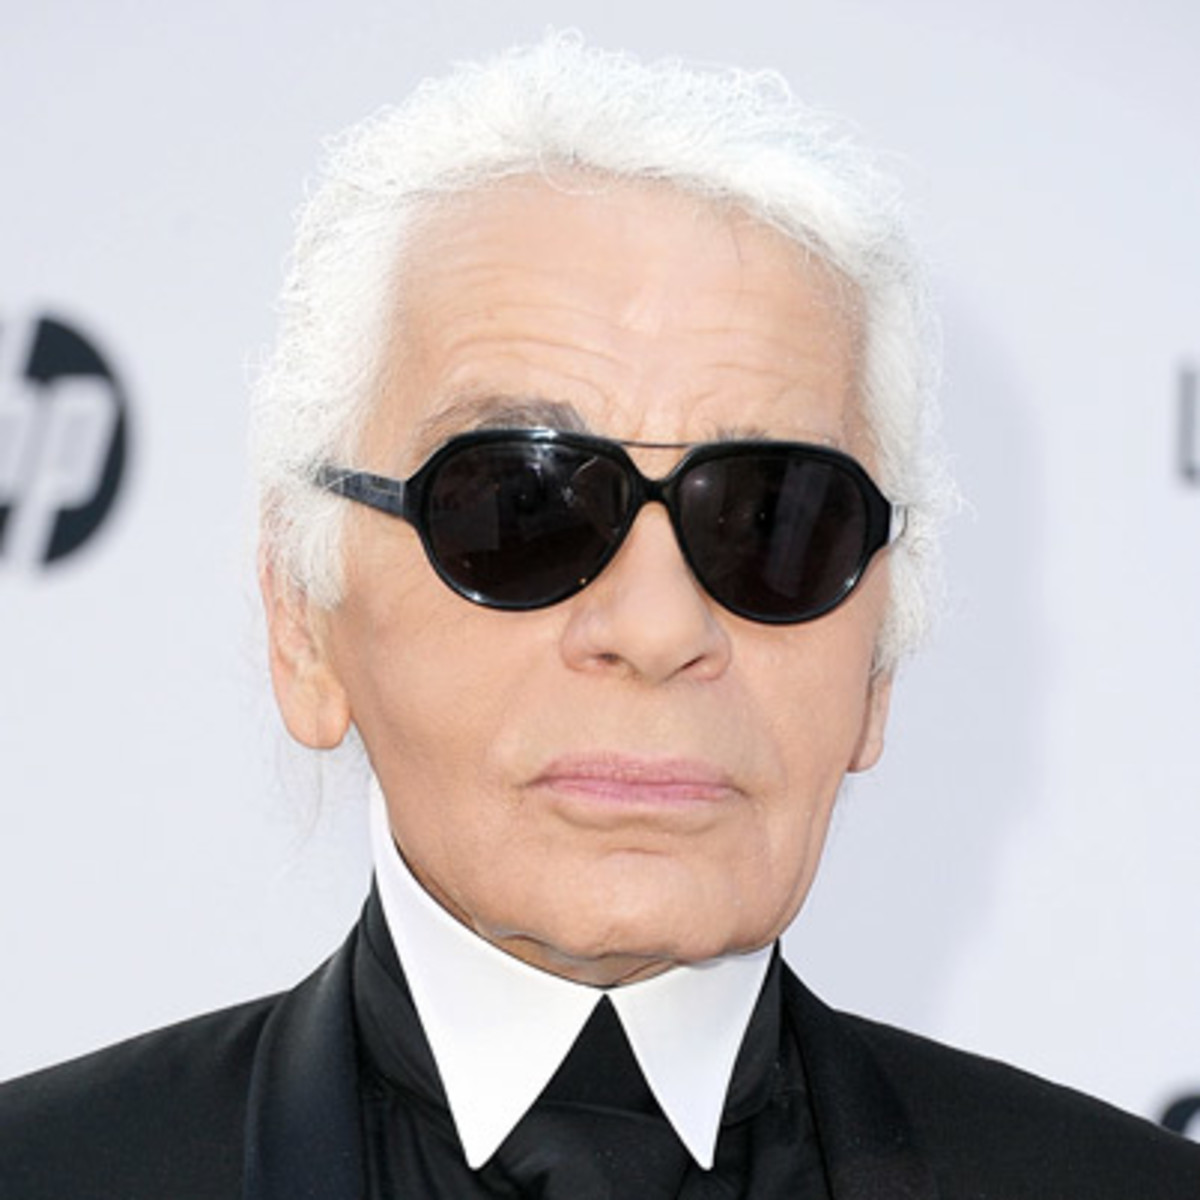 Karl lagerfeld fashion designer biography for French couture brands